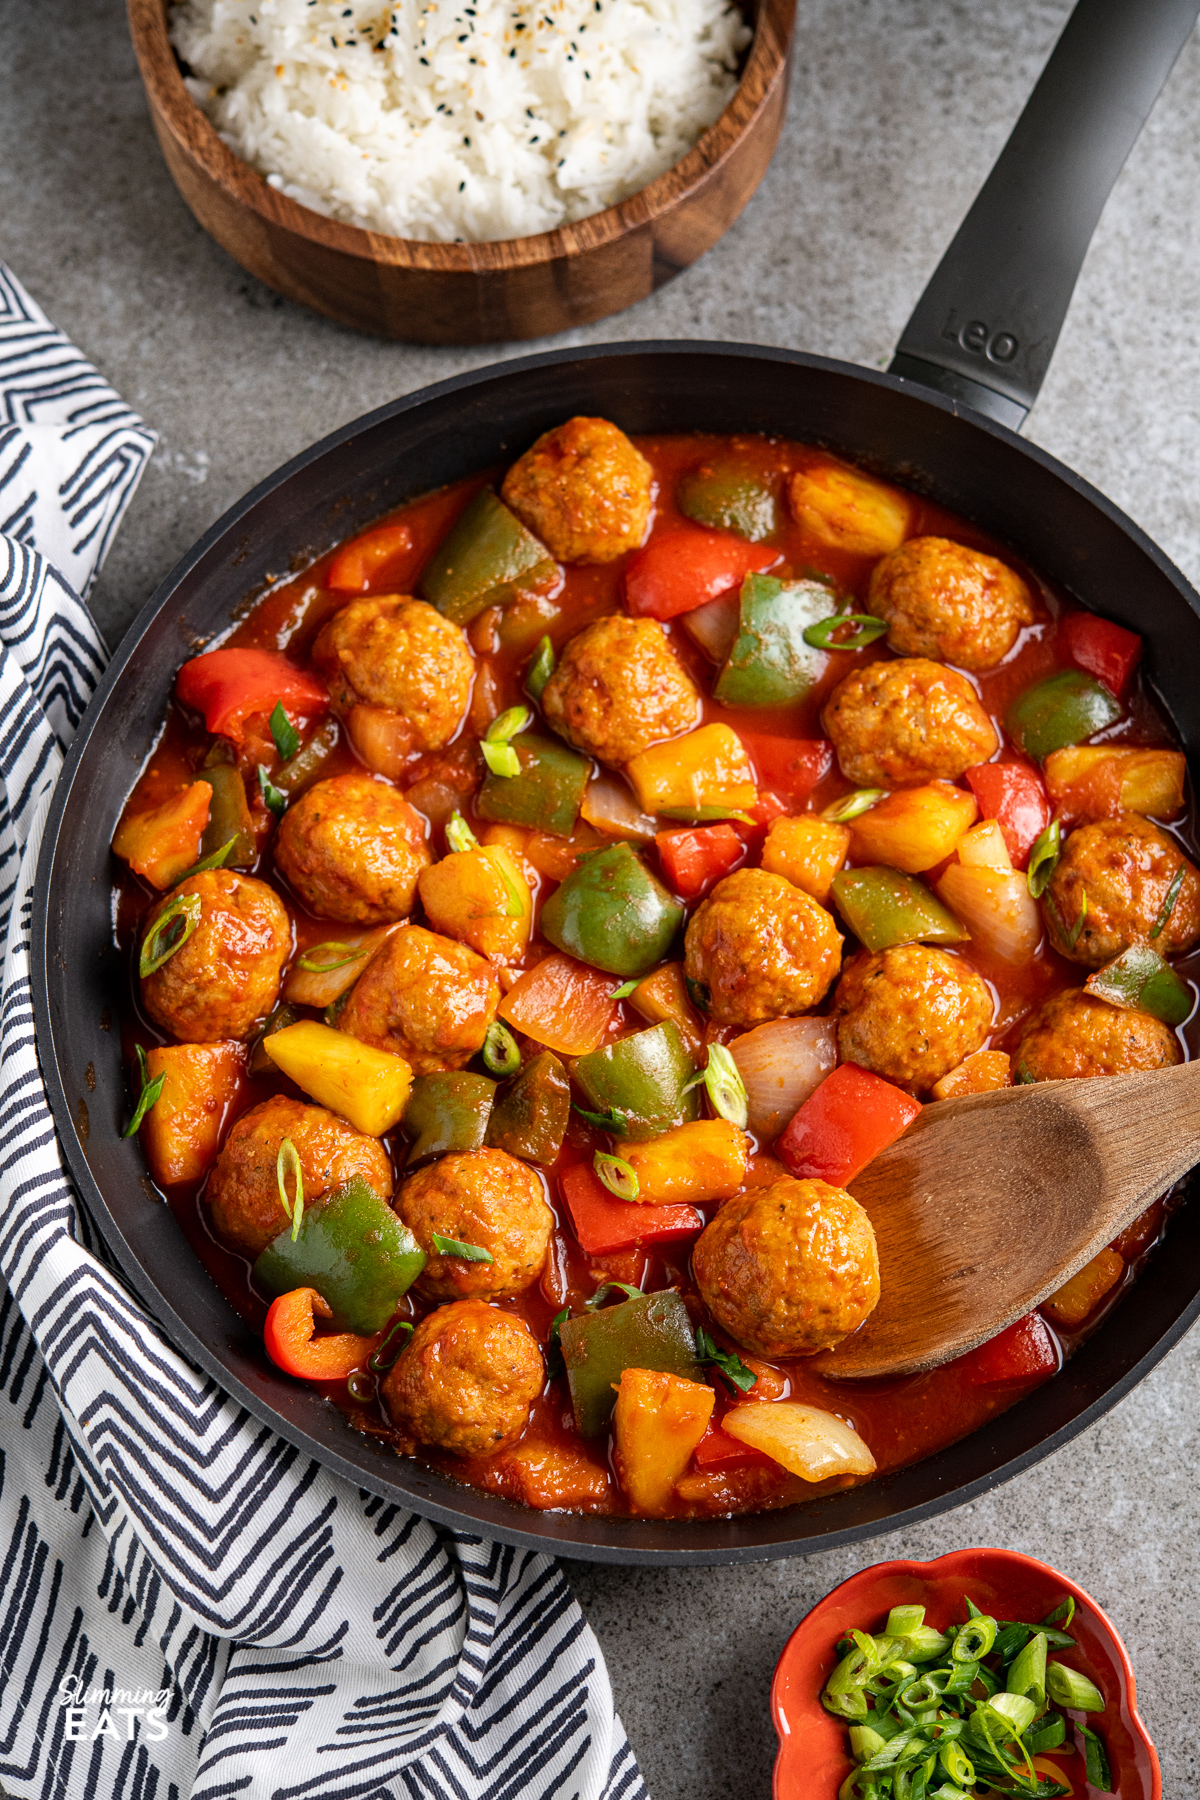 sweet and sour chicken meatballs in a black frying pan with vegetables and a wooden bowl of jasmine rice in background